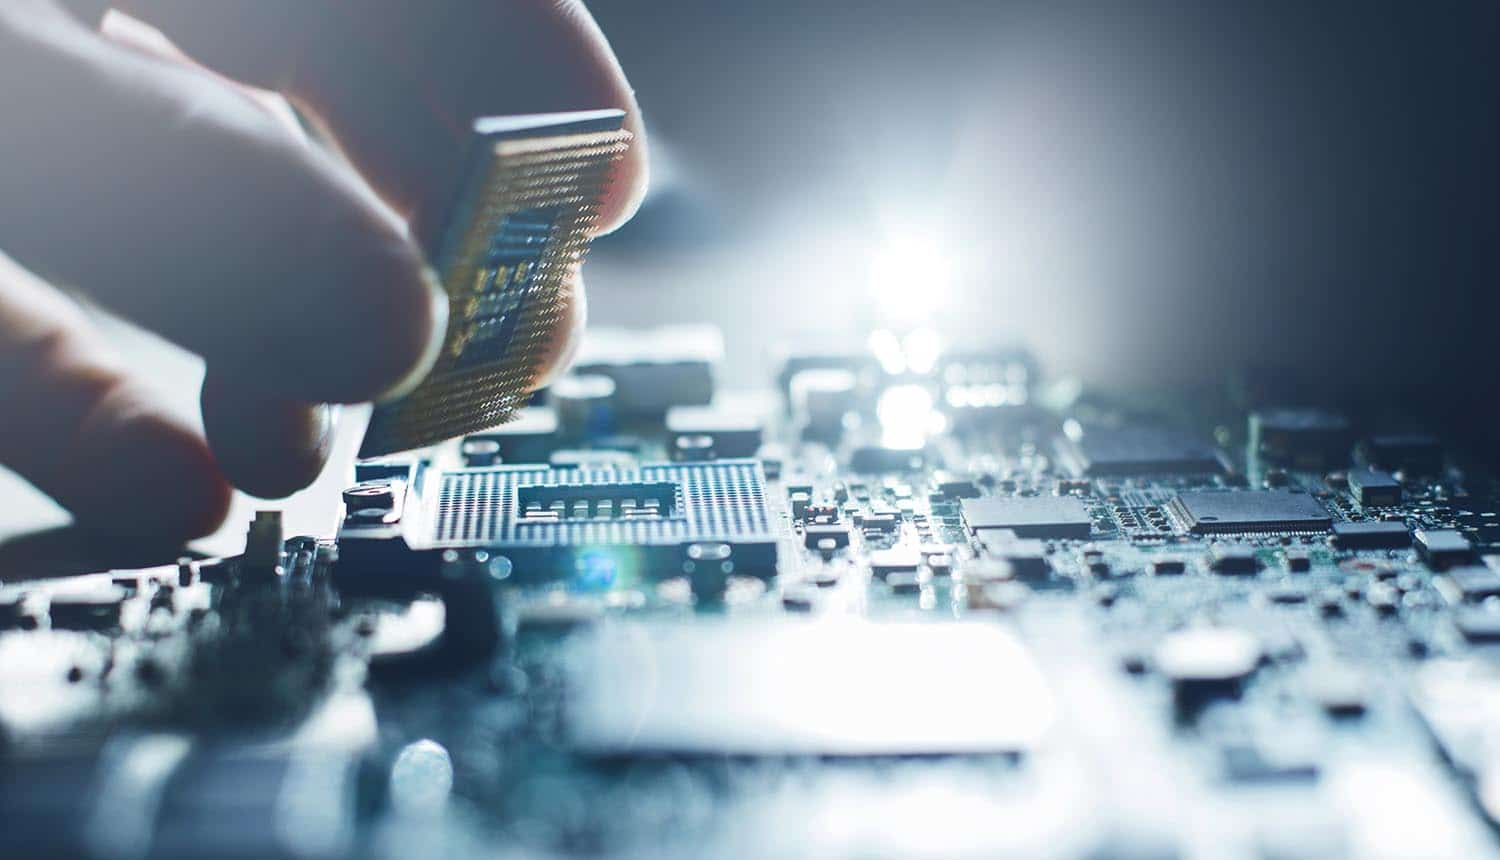 Engineer working on hardware chip on motherboard showing Crypto AG using encryption backdoor on cryptographic equipment for CIA to spy on foreign affairs